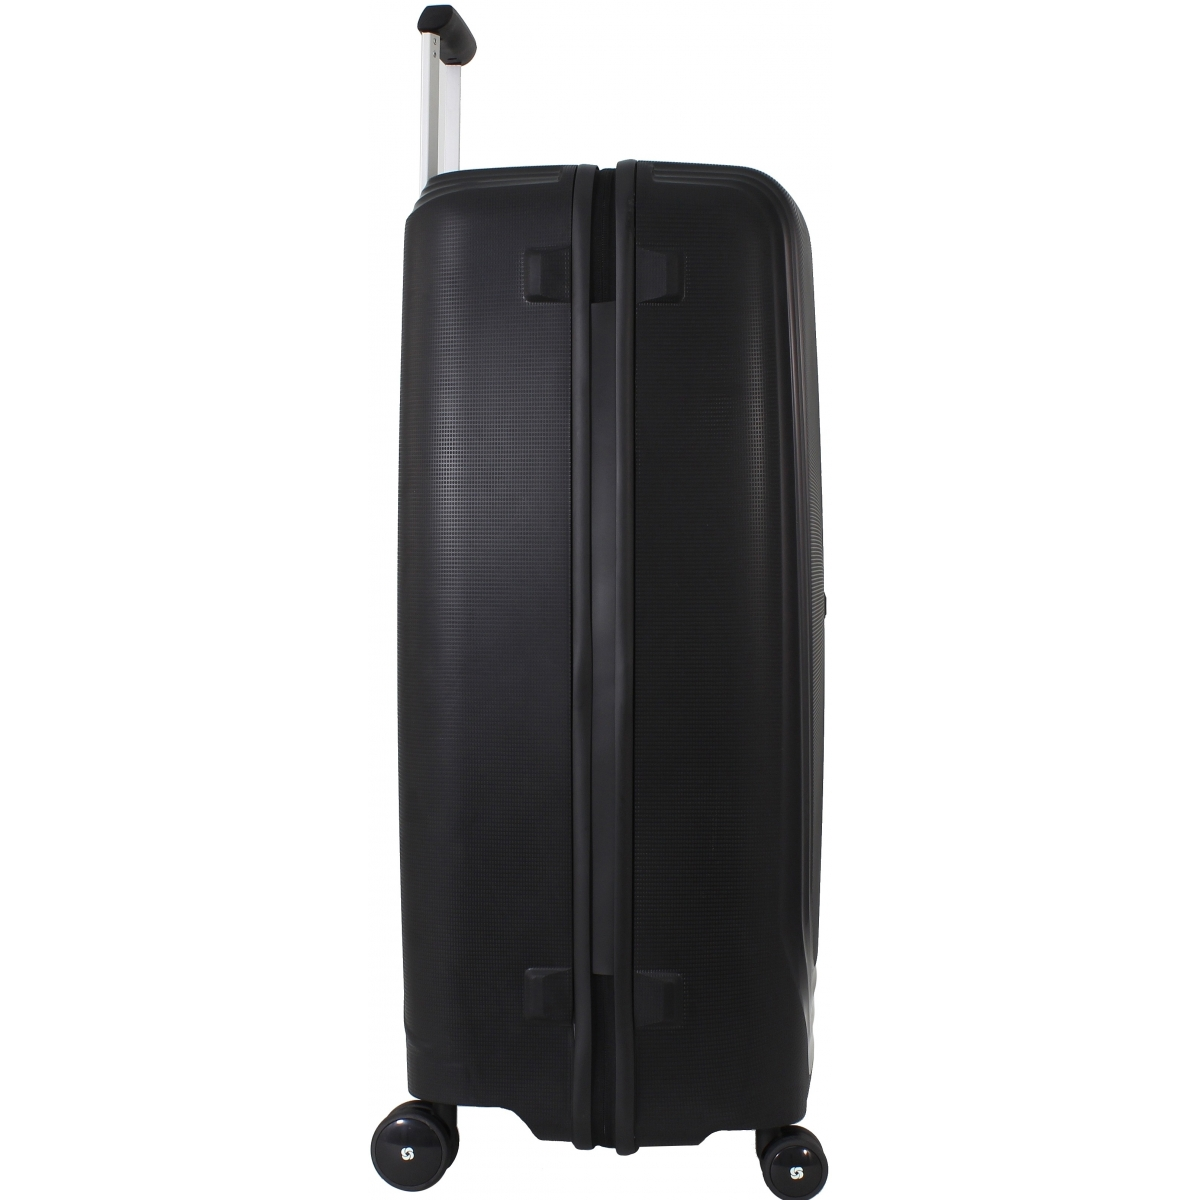 valise optic spinner 75 28 samsonite optic88 couleur principale noir valise pas cher. Black Bedroom Furniture Sets. Home Design Ideas